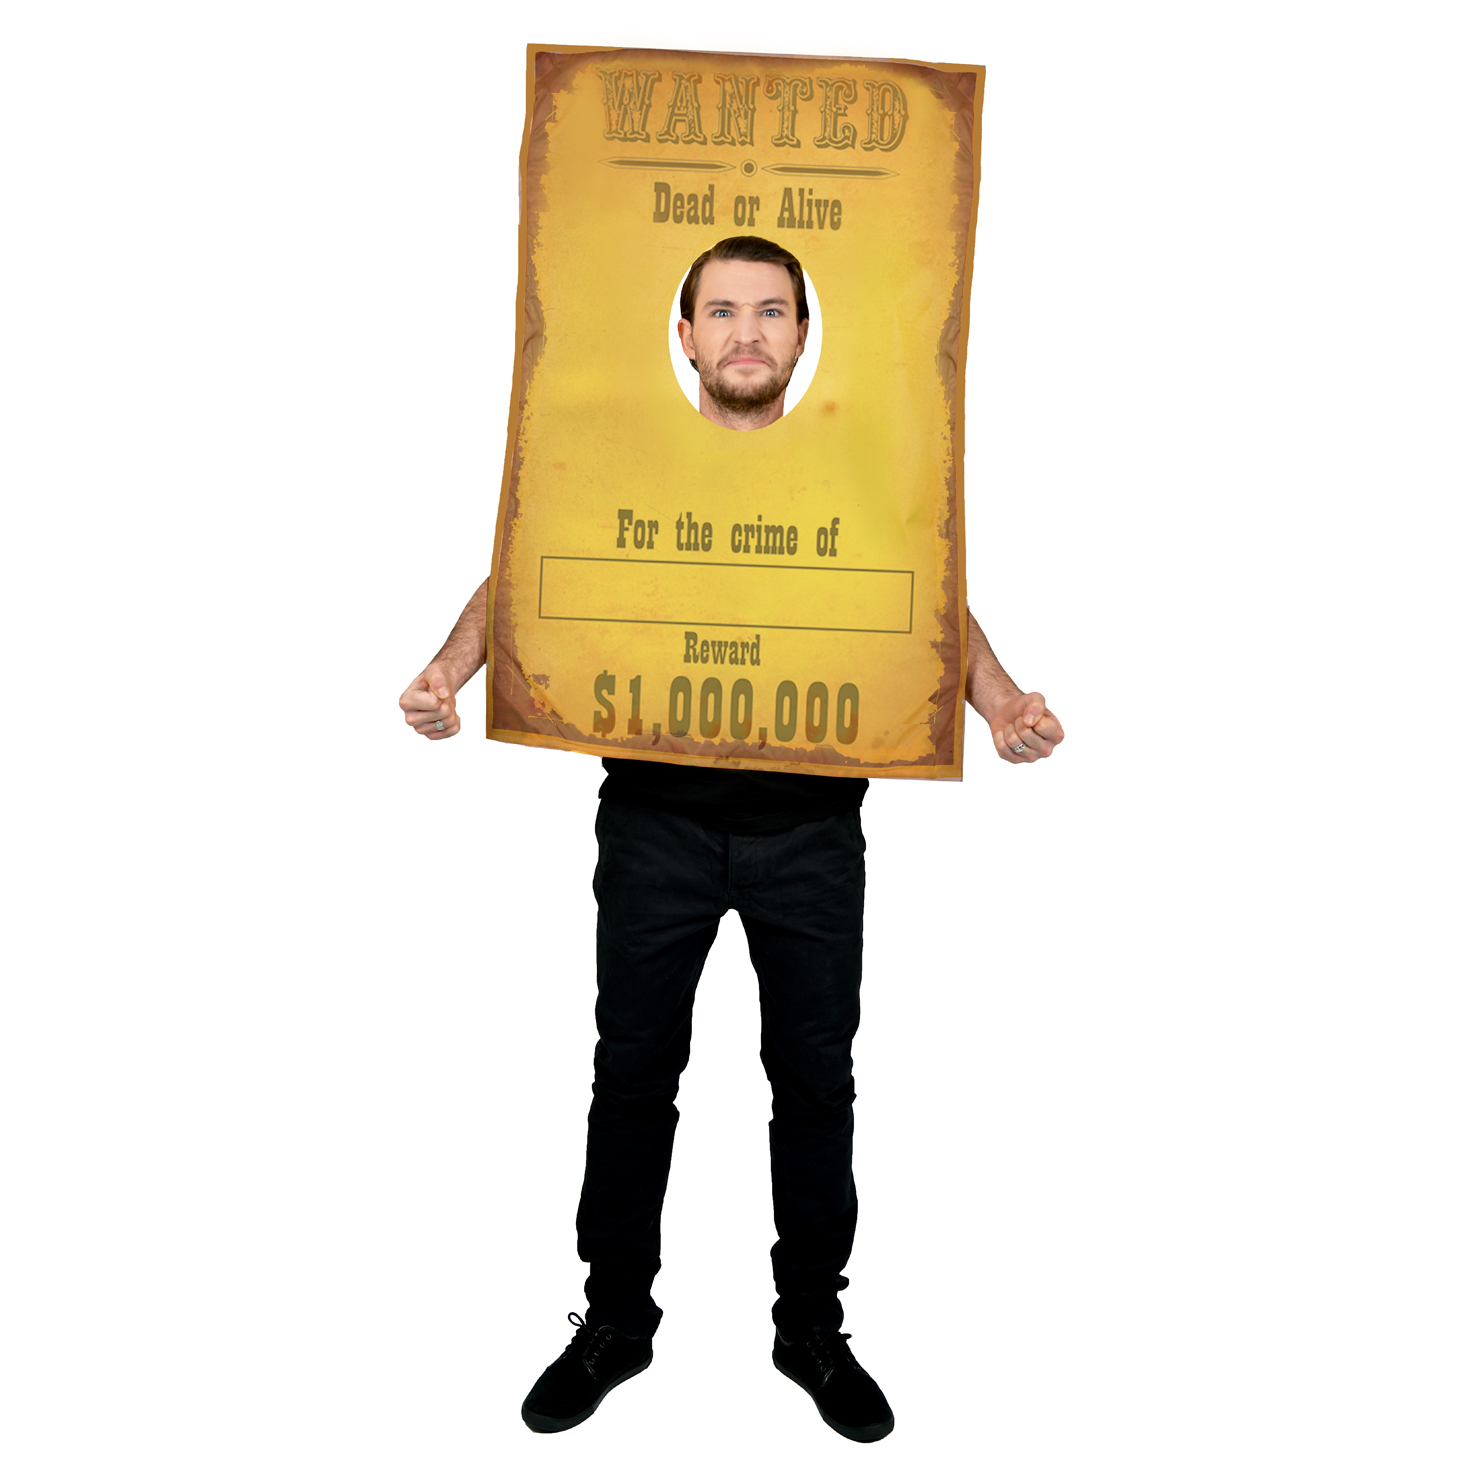 Cowboy wanted poster funny wild west fancy dress costume stag party festival ebay - Wild west funny ...